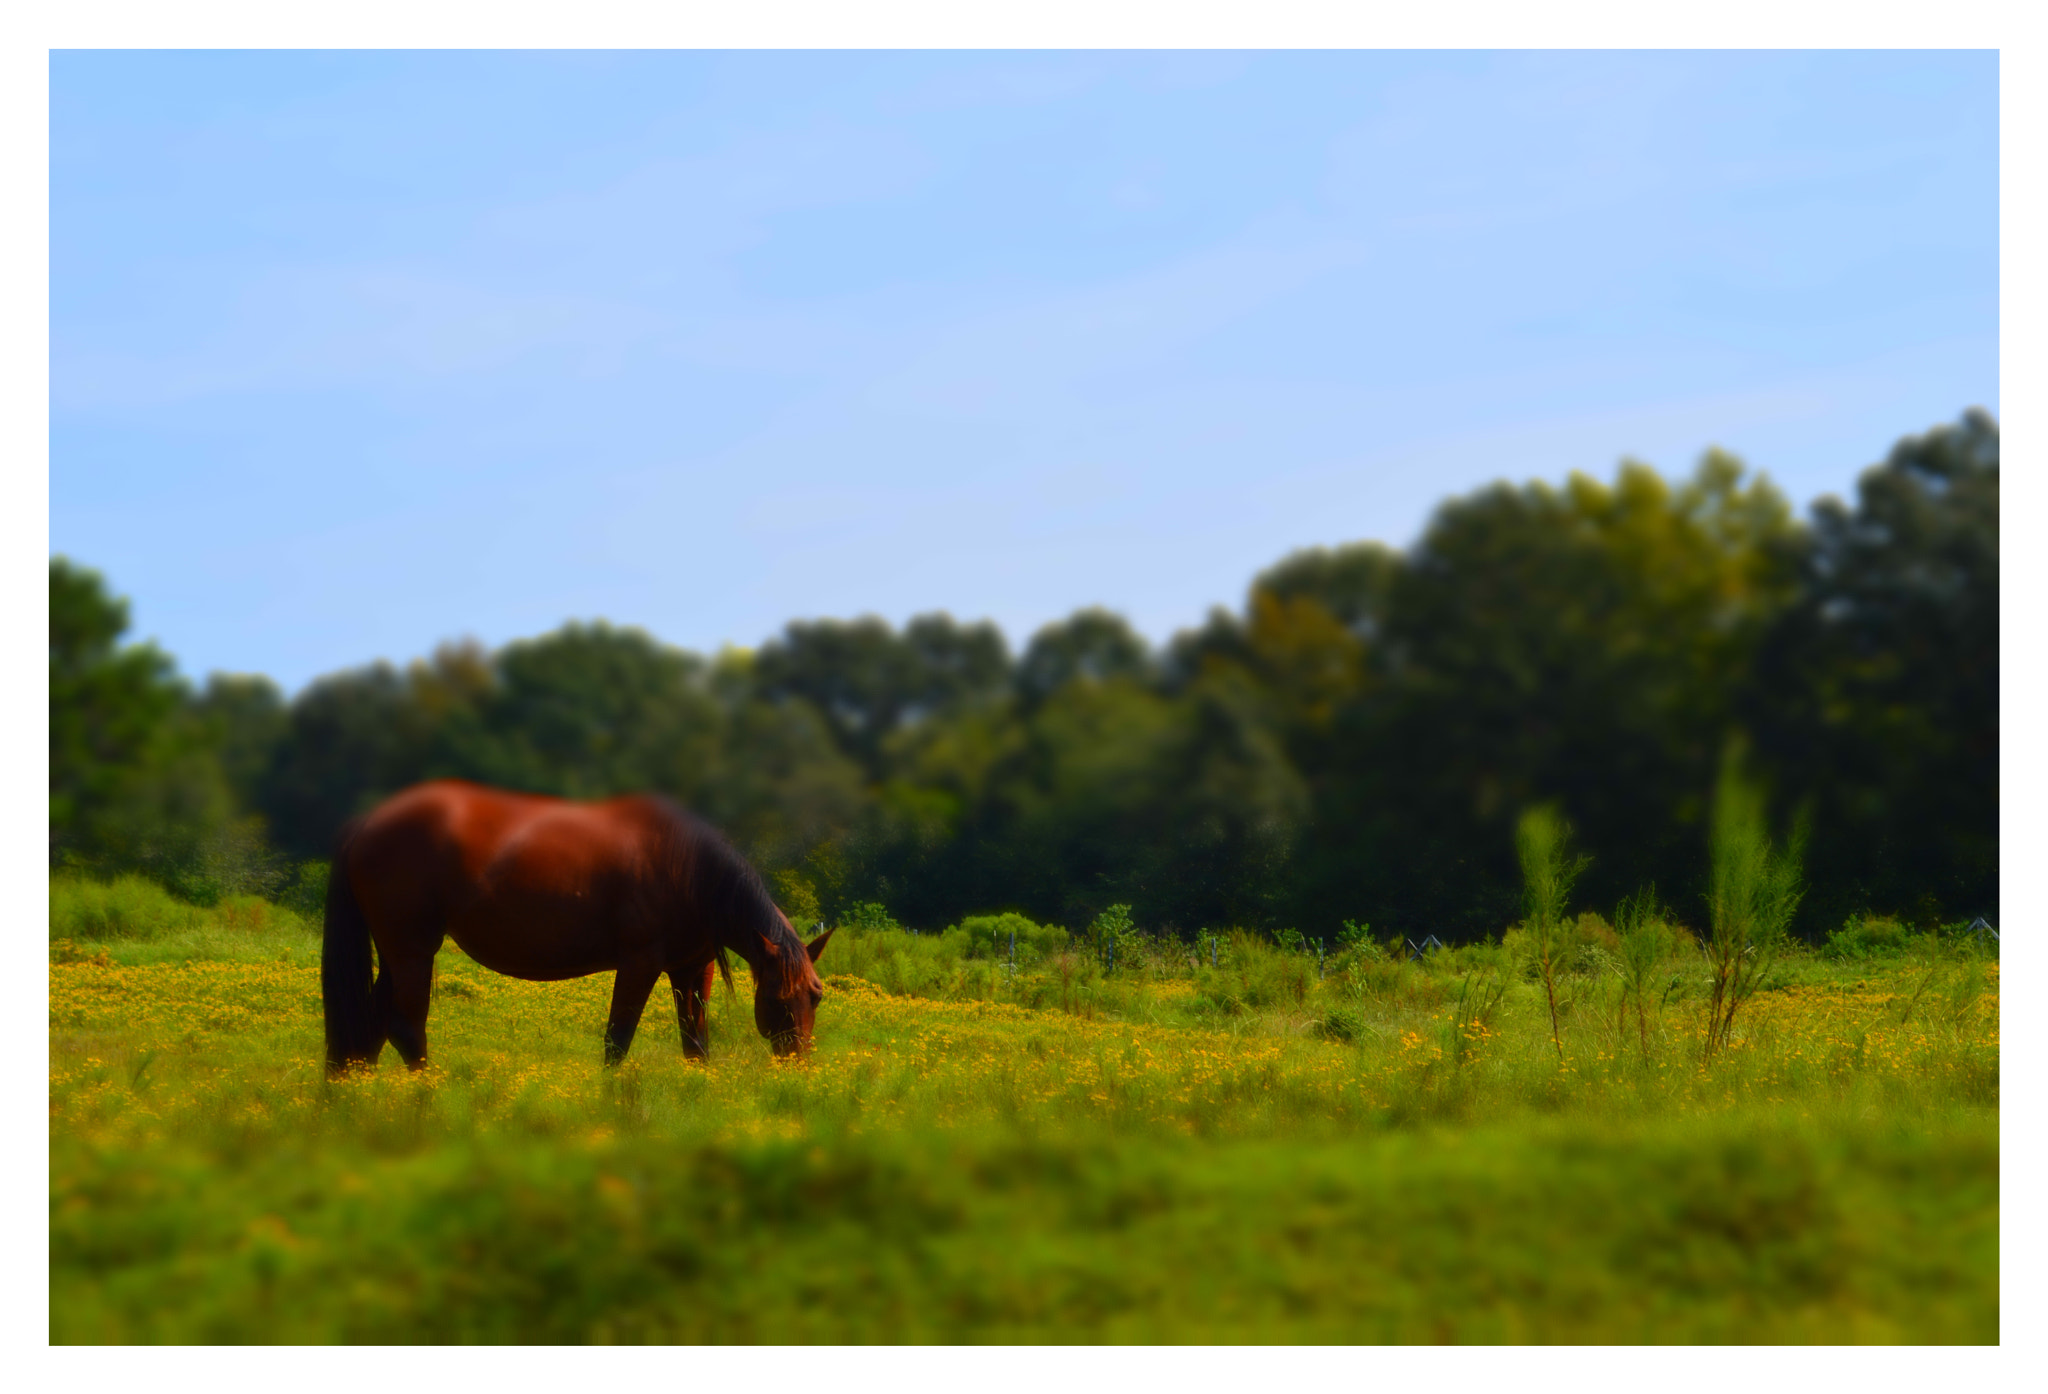 Photograph Horse In a Yellow Field by Stacy Baugher on 500px